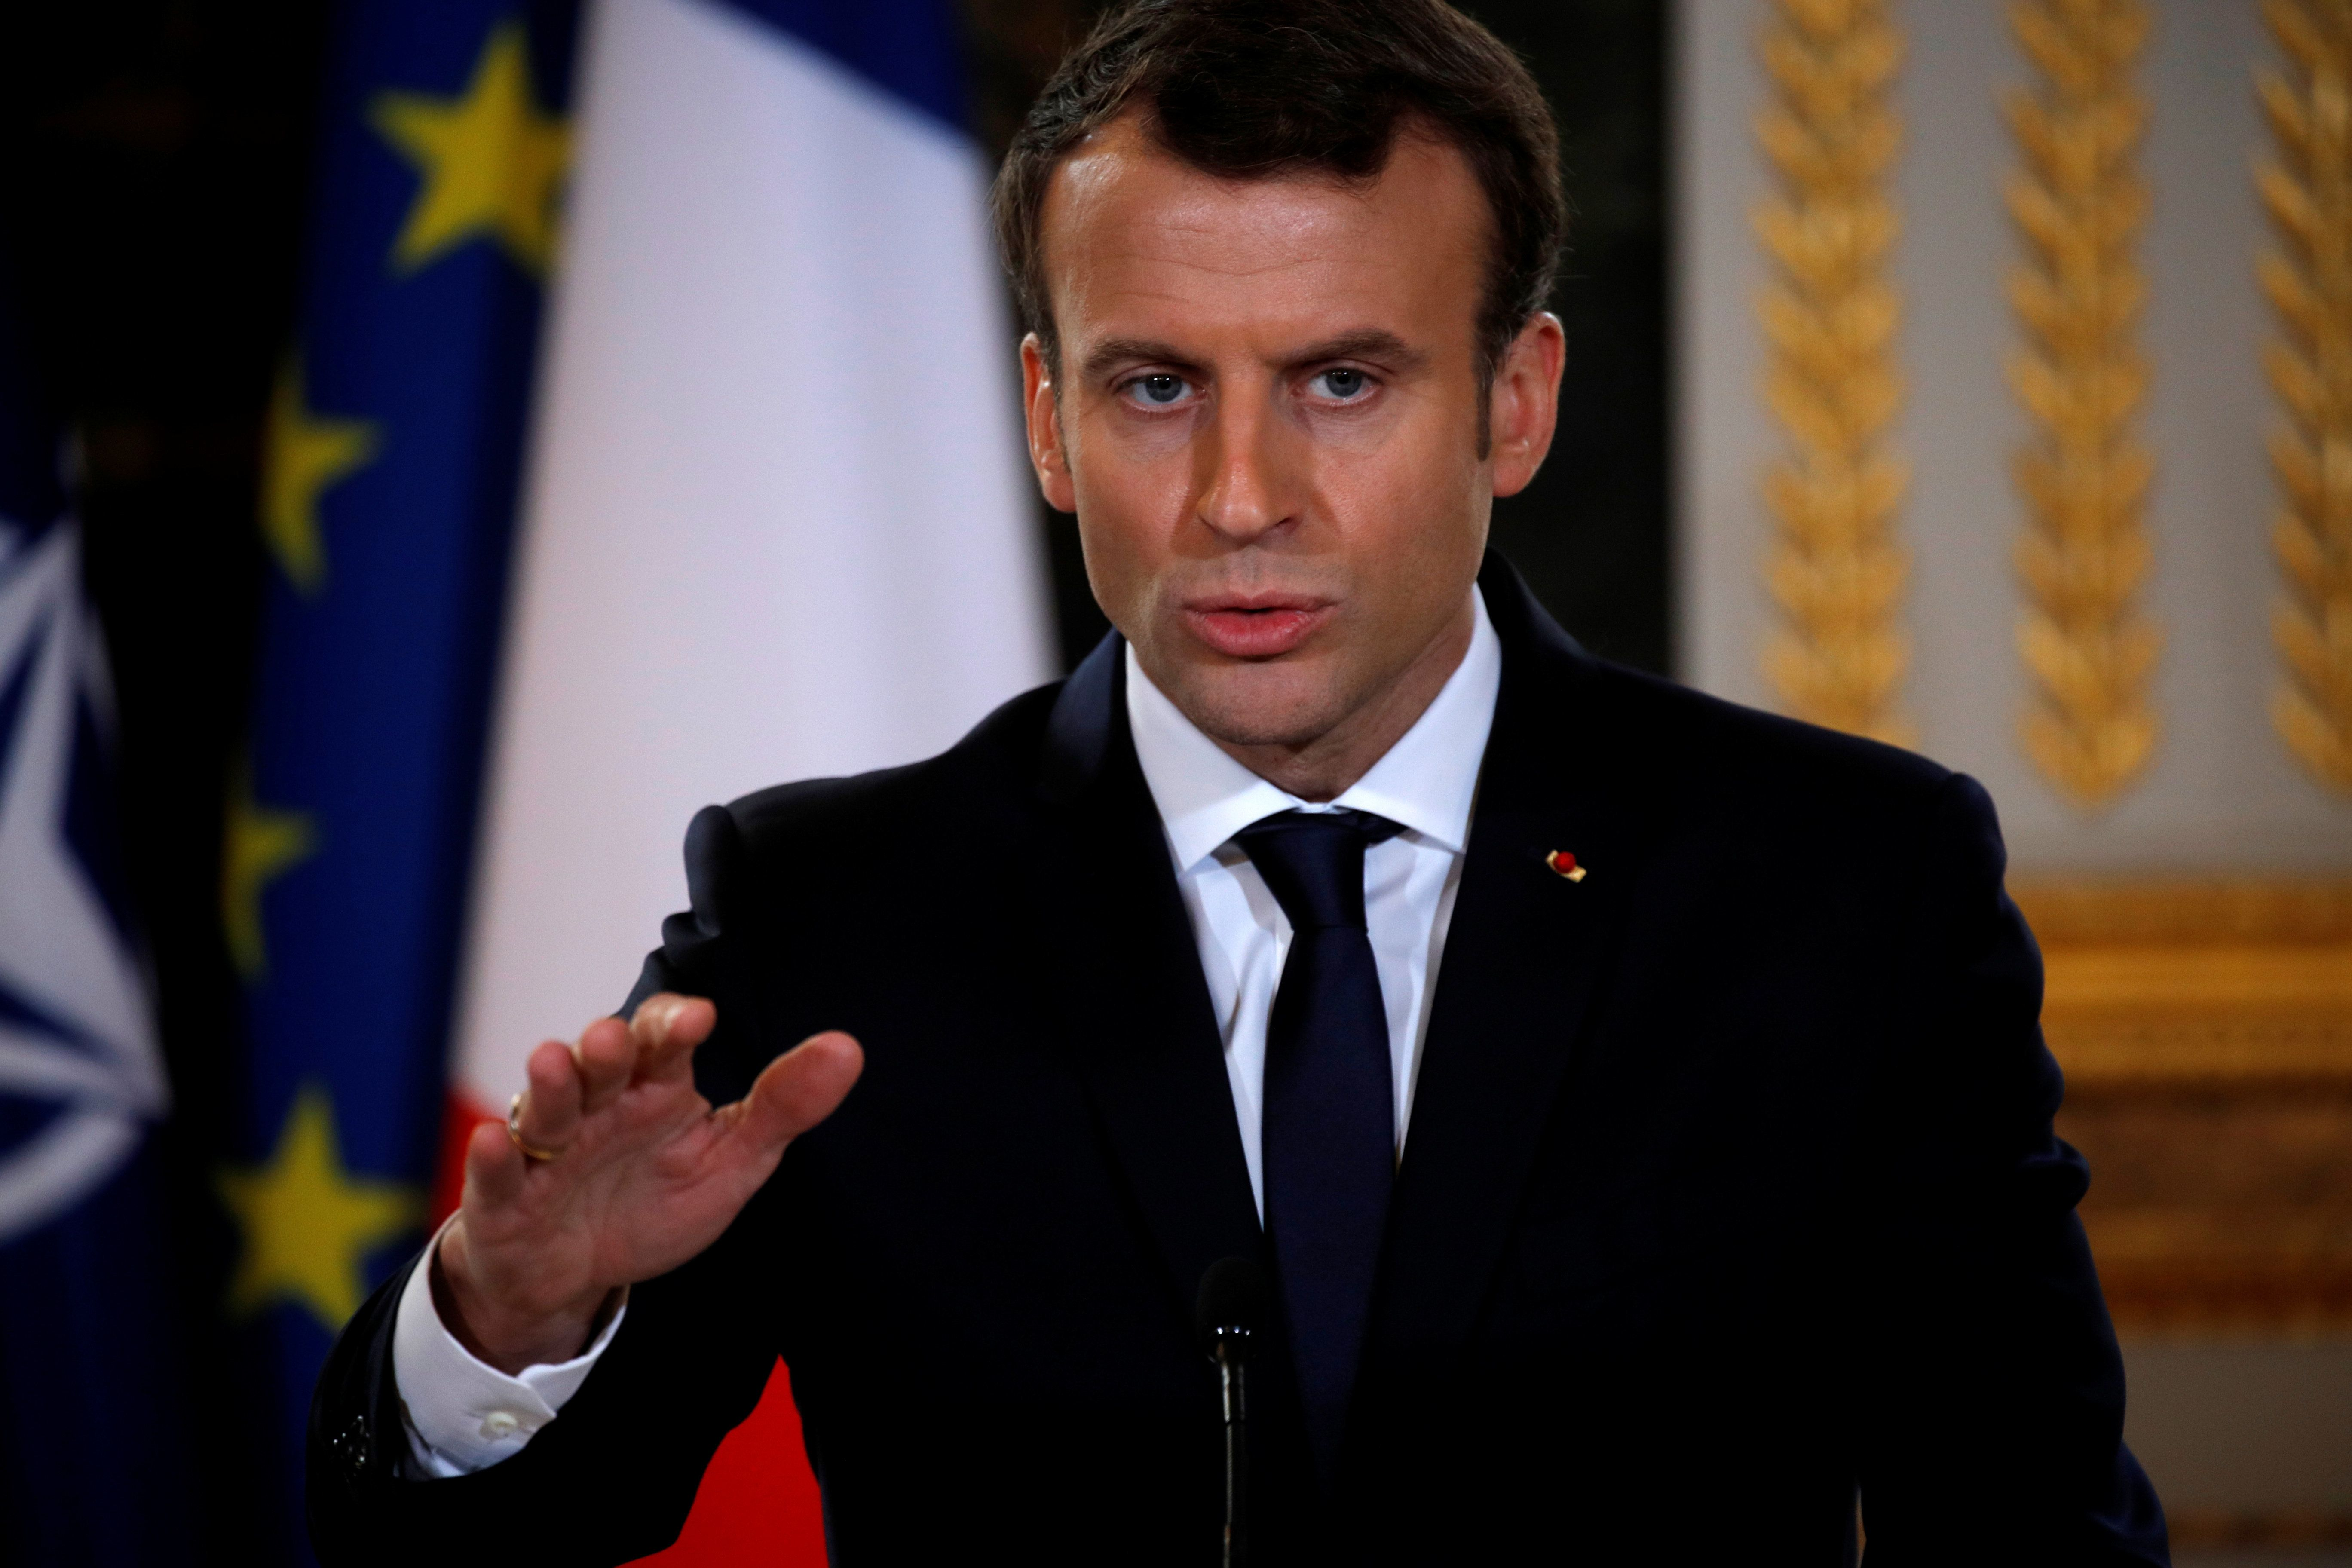 French President Emmanuel Macron attends a news conference with NATO Secretary-General Jens Stoltenberg (not seen) at the Ely